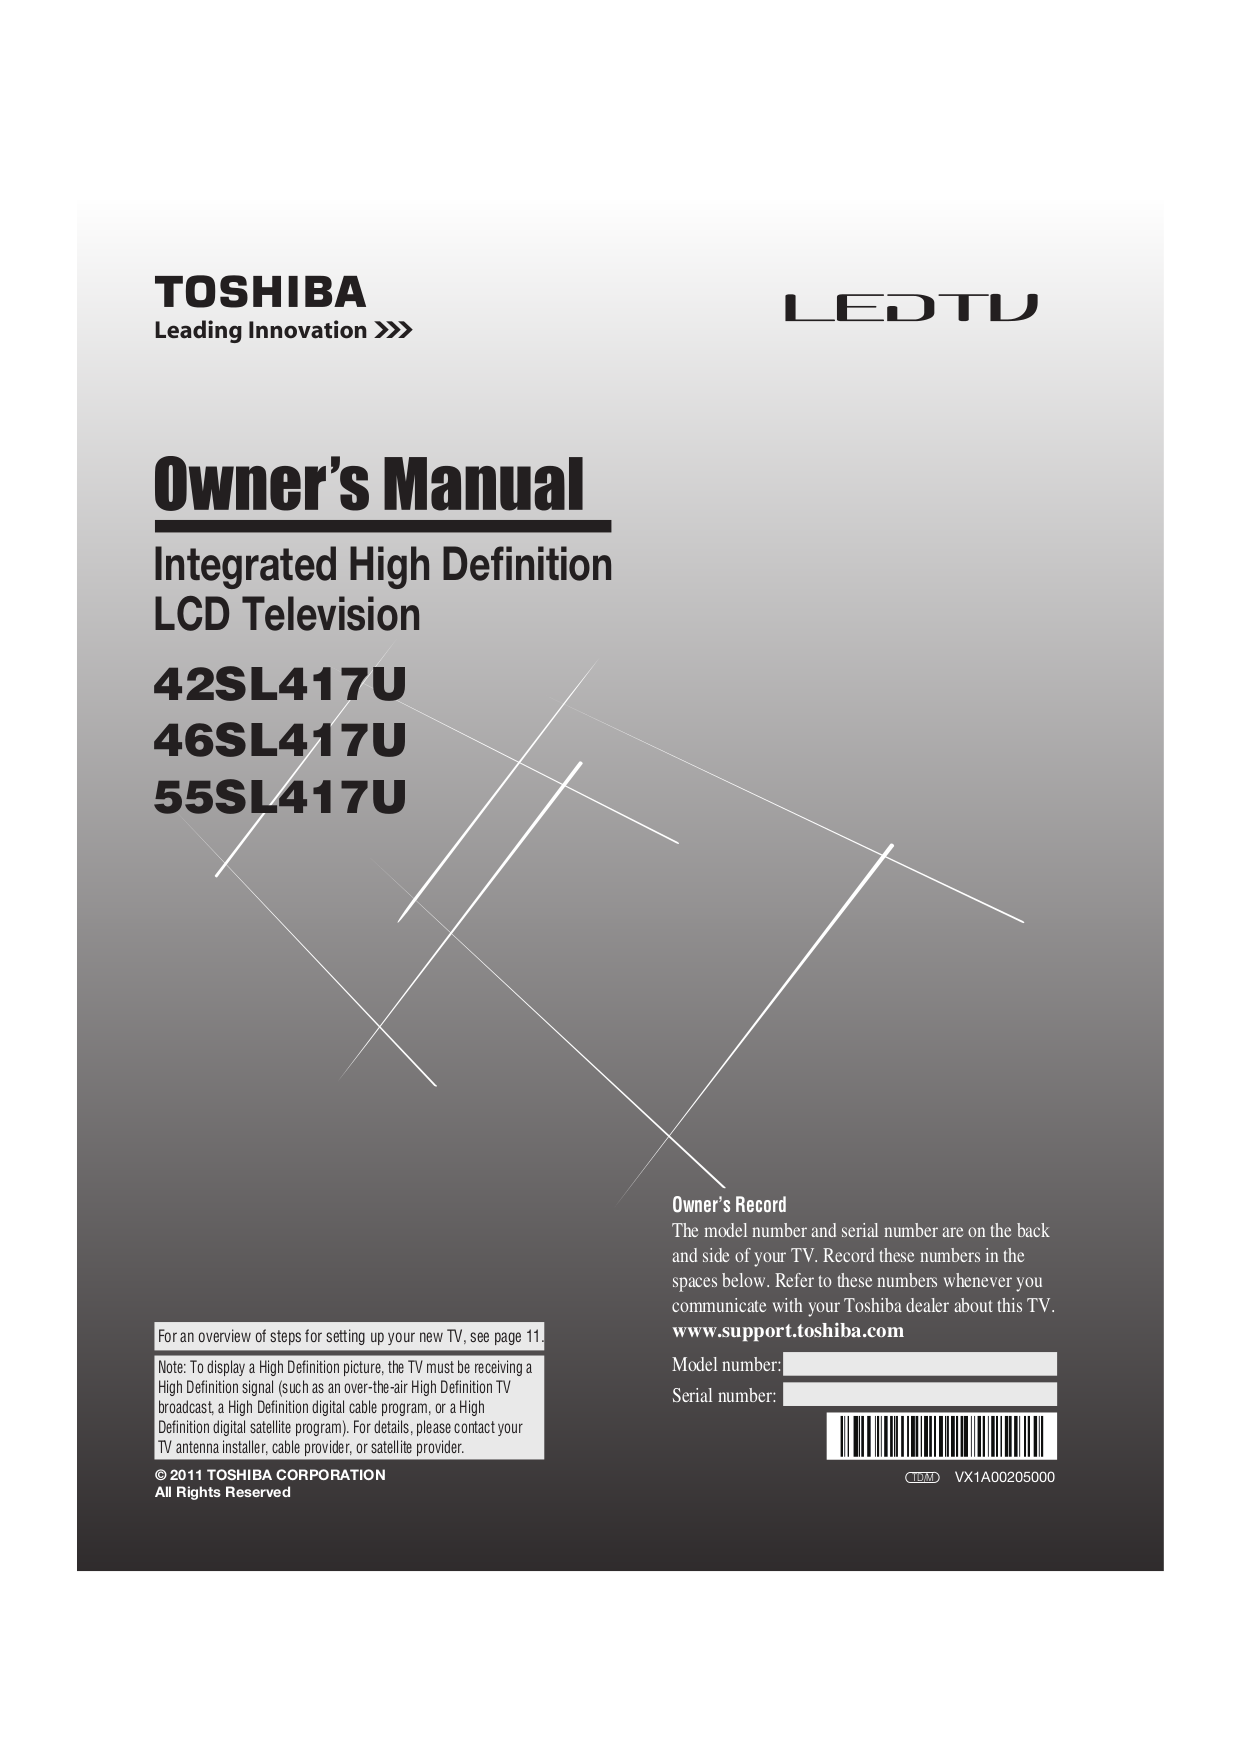 download free pdf for toshiba 55sl417u tv manual rh umlib com toshiba 55sl417u manual pdf toshiba 55sl417u manual pdf